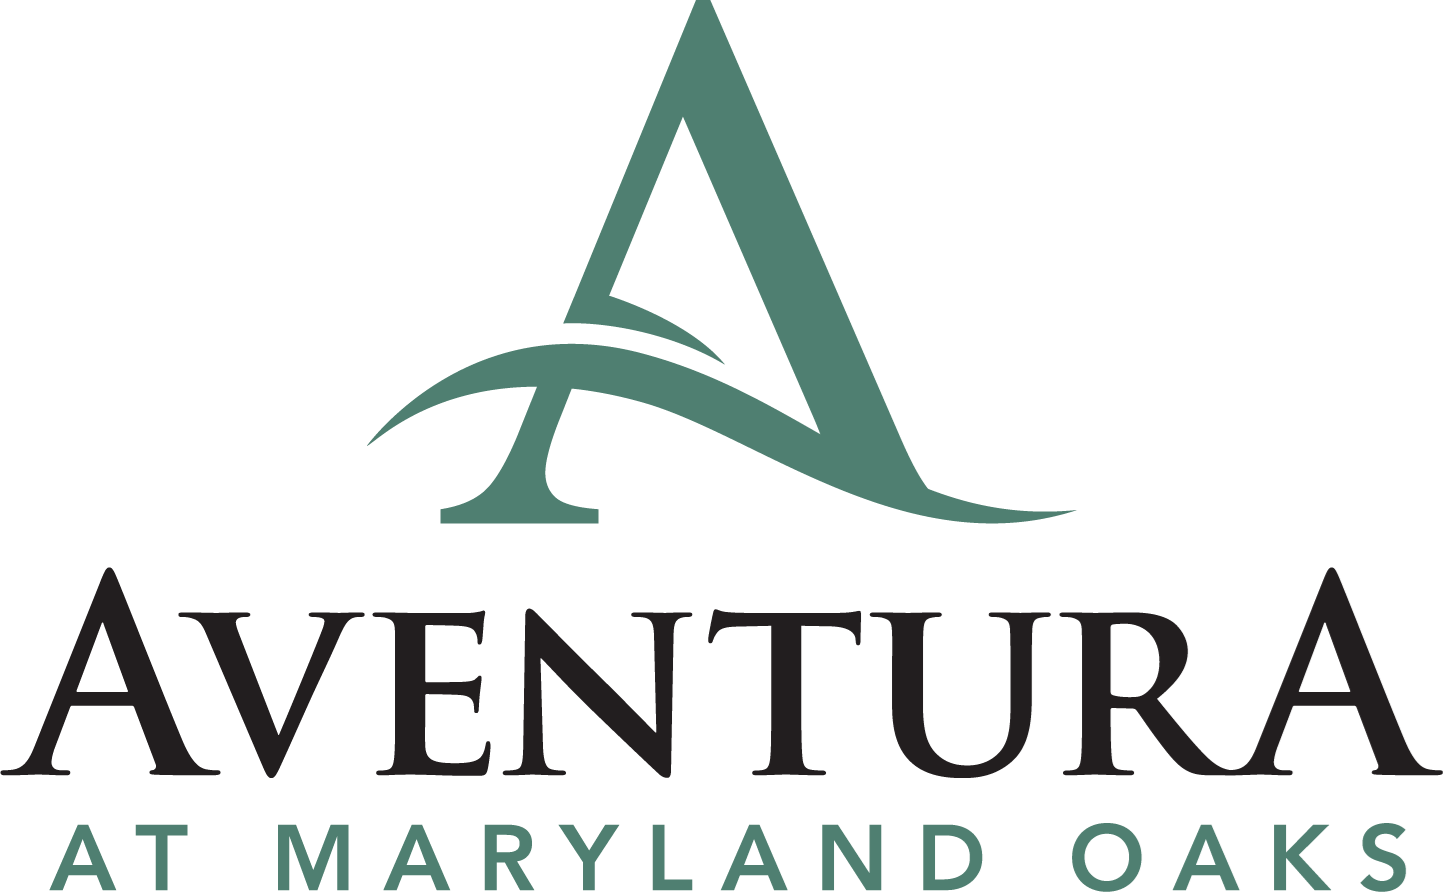 Aventura at Maryland Oaks, Maryland Heights